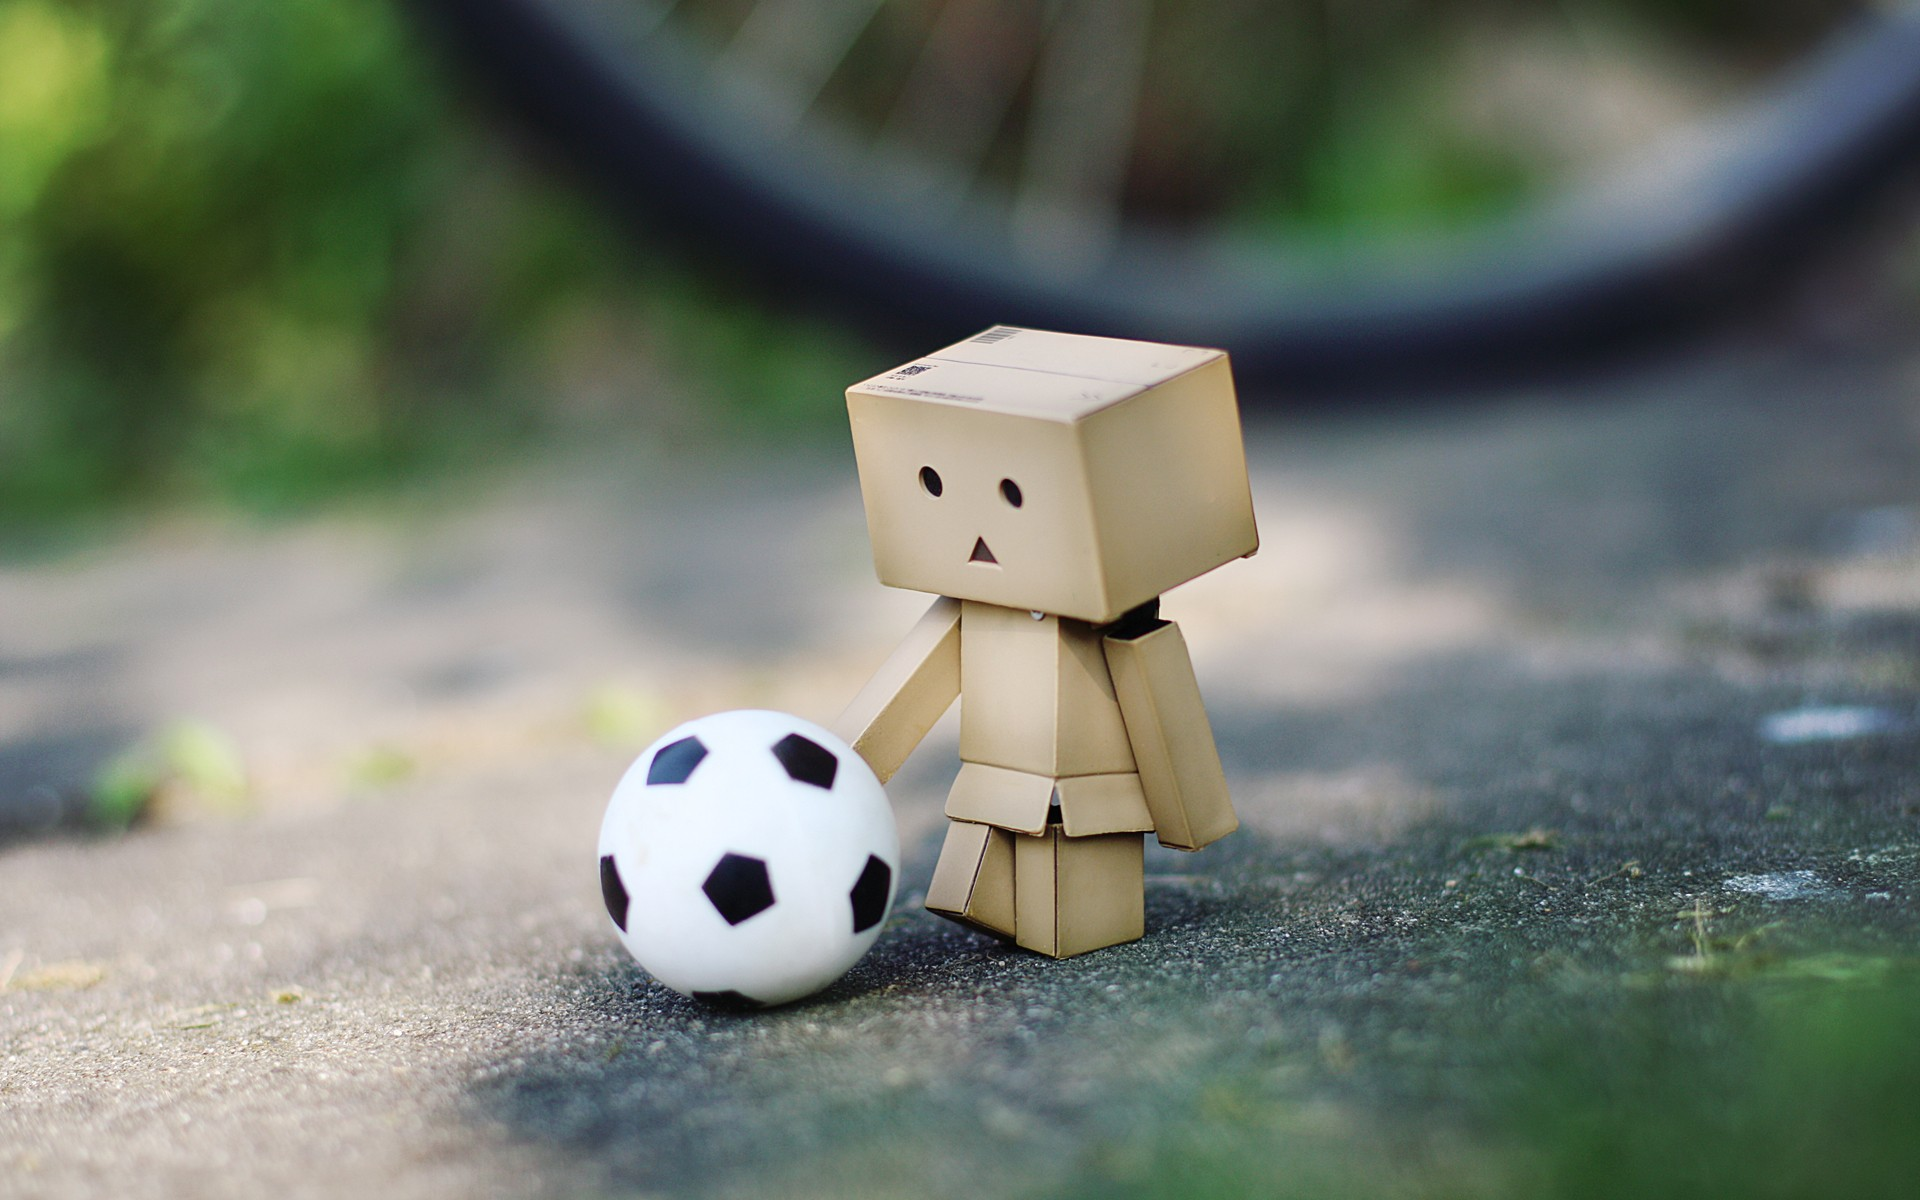 Soccer Desktop Wallpapers Danbo Playing Soccer Desktop Backgrounds 1920x1200